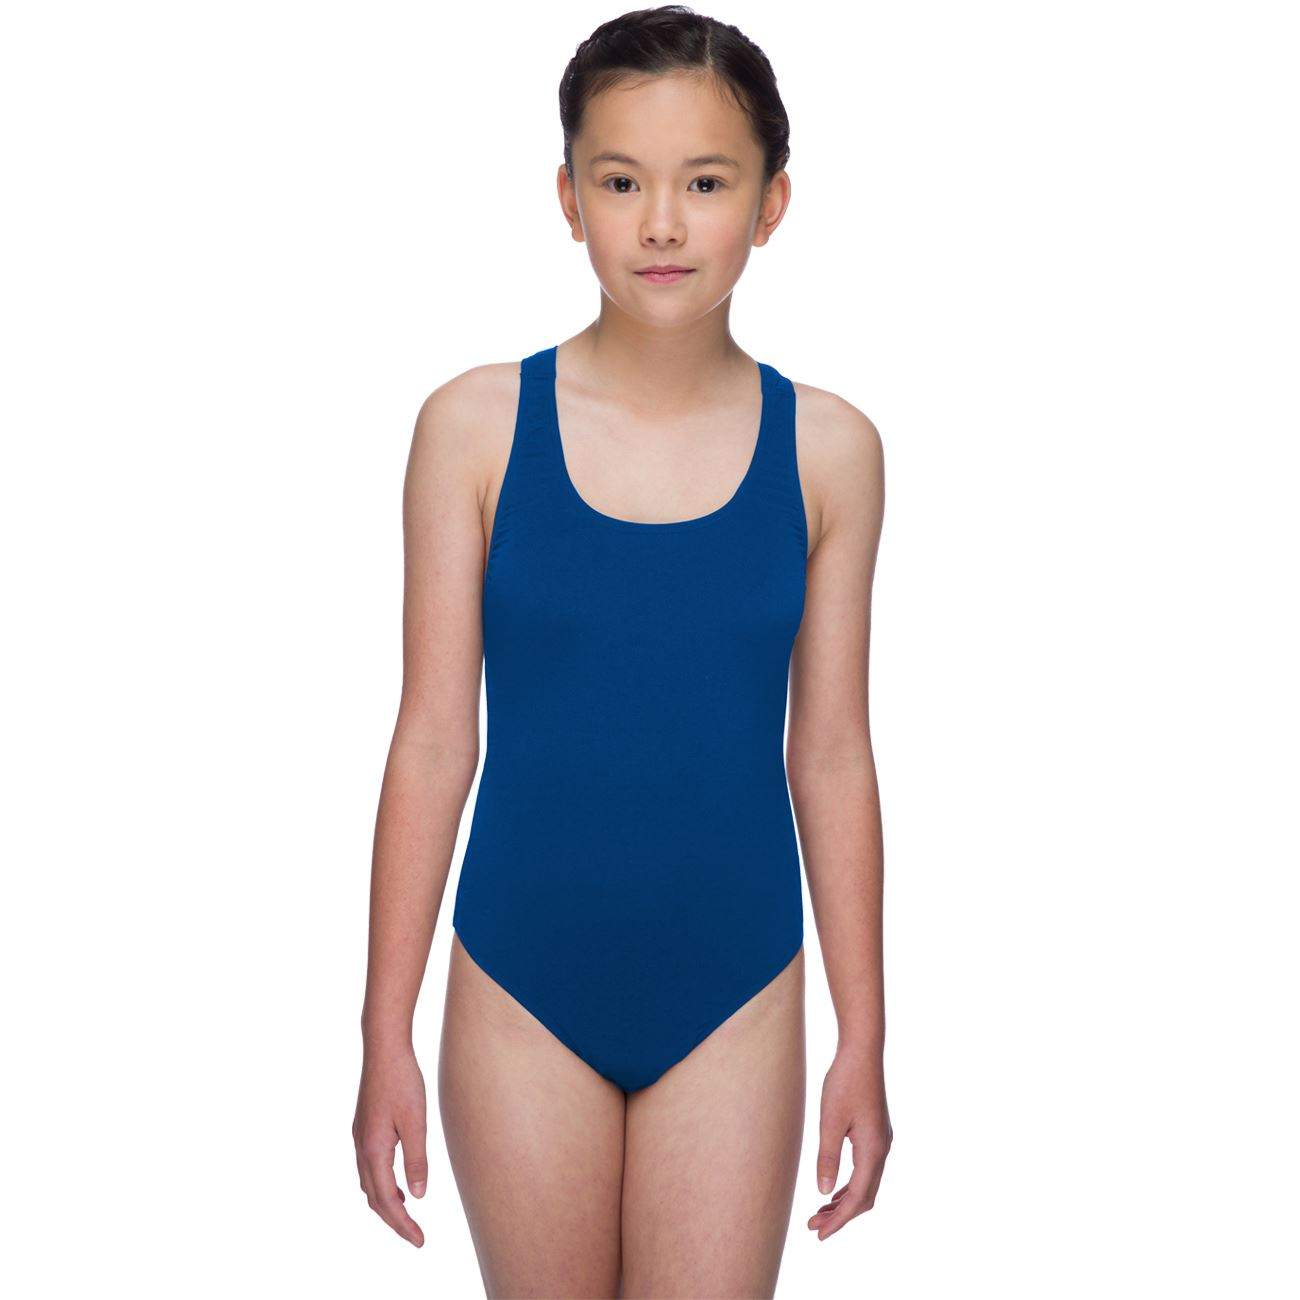 Maru Girls Solid Pacer Swimsuit Swimming Lesson Costume ...